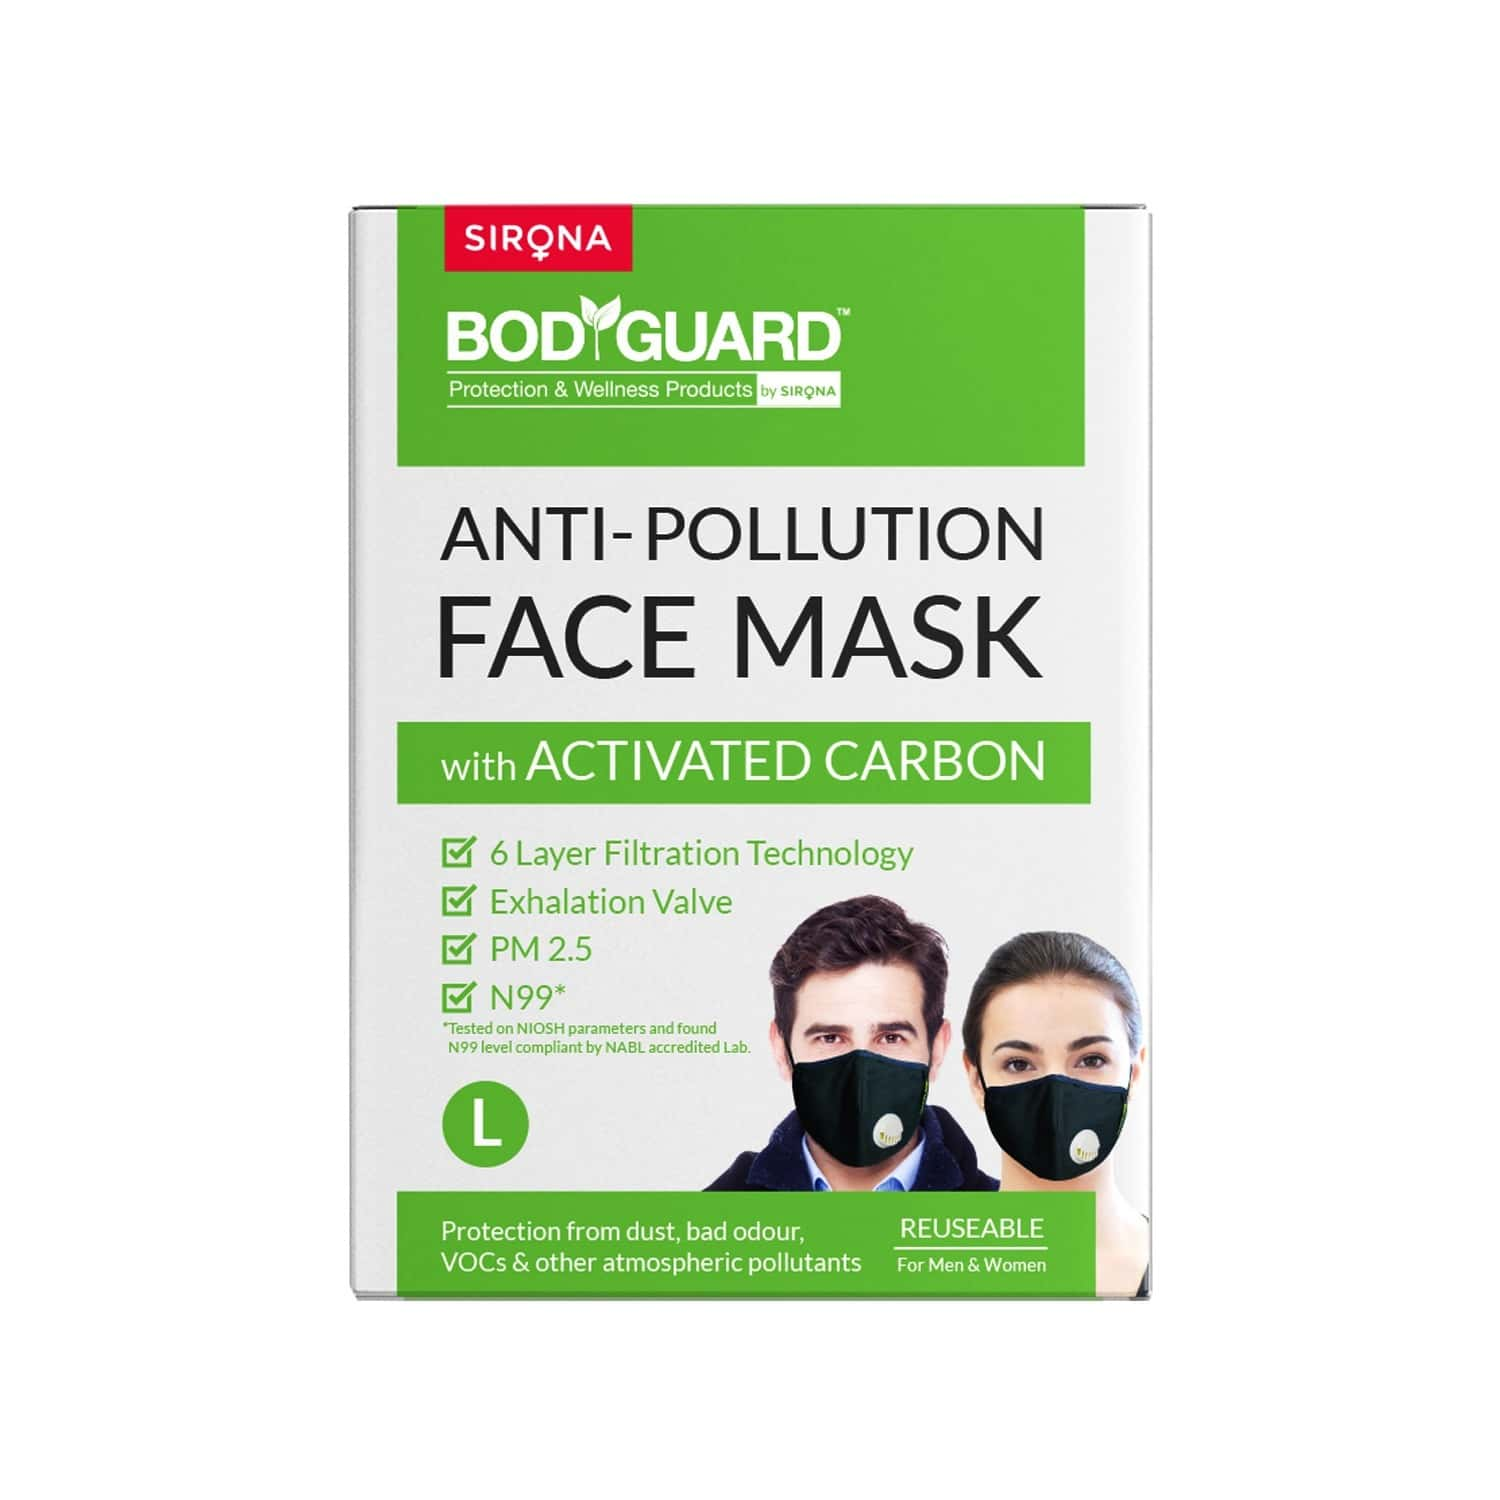 Bodyguard Reusable Activated Carbon(large) N99 Mask